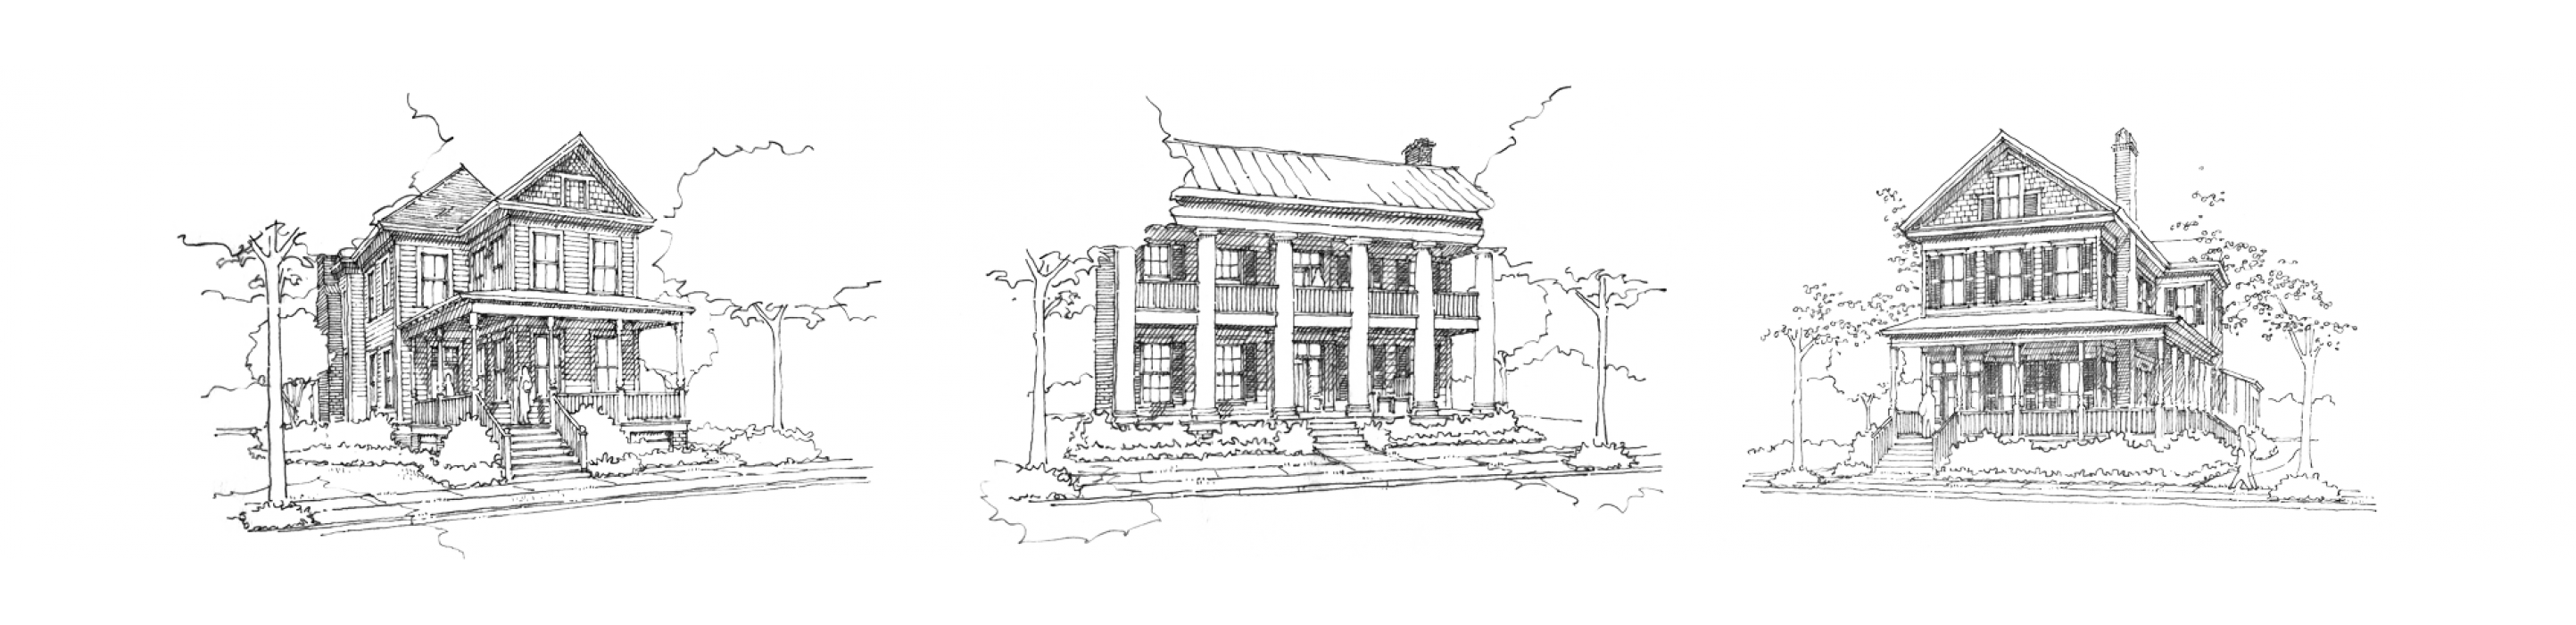 Growth drawing building. Historical concepts communities towns